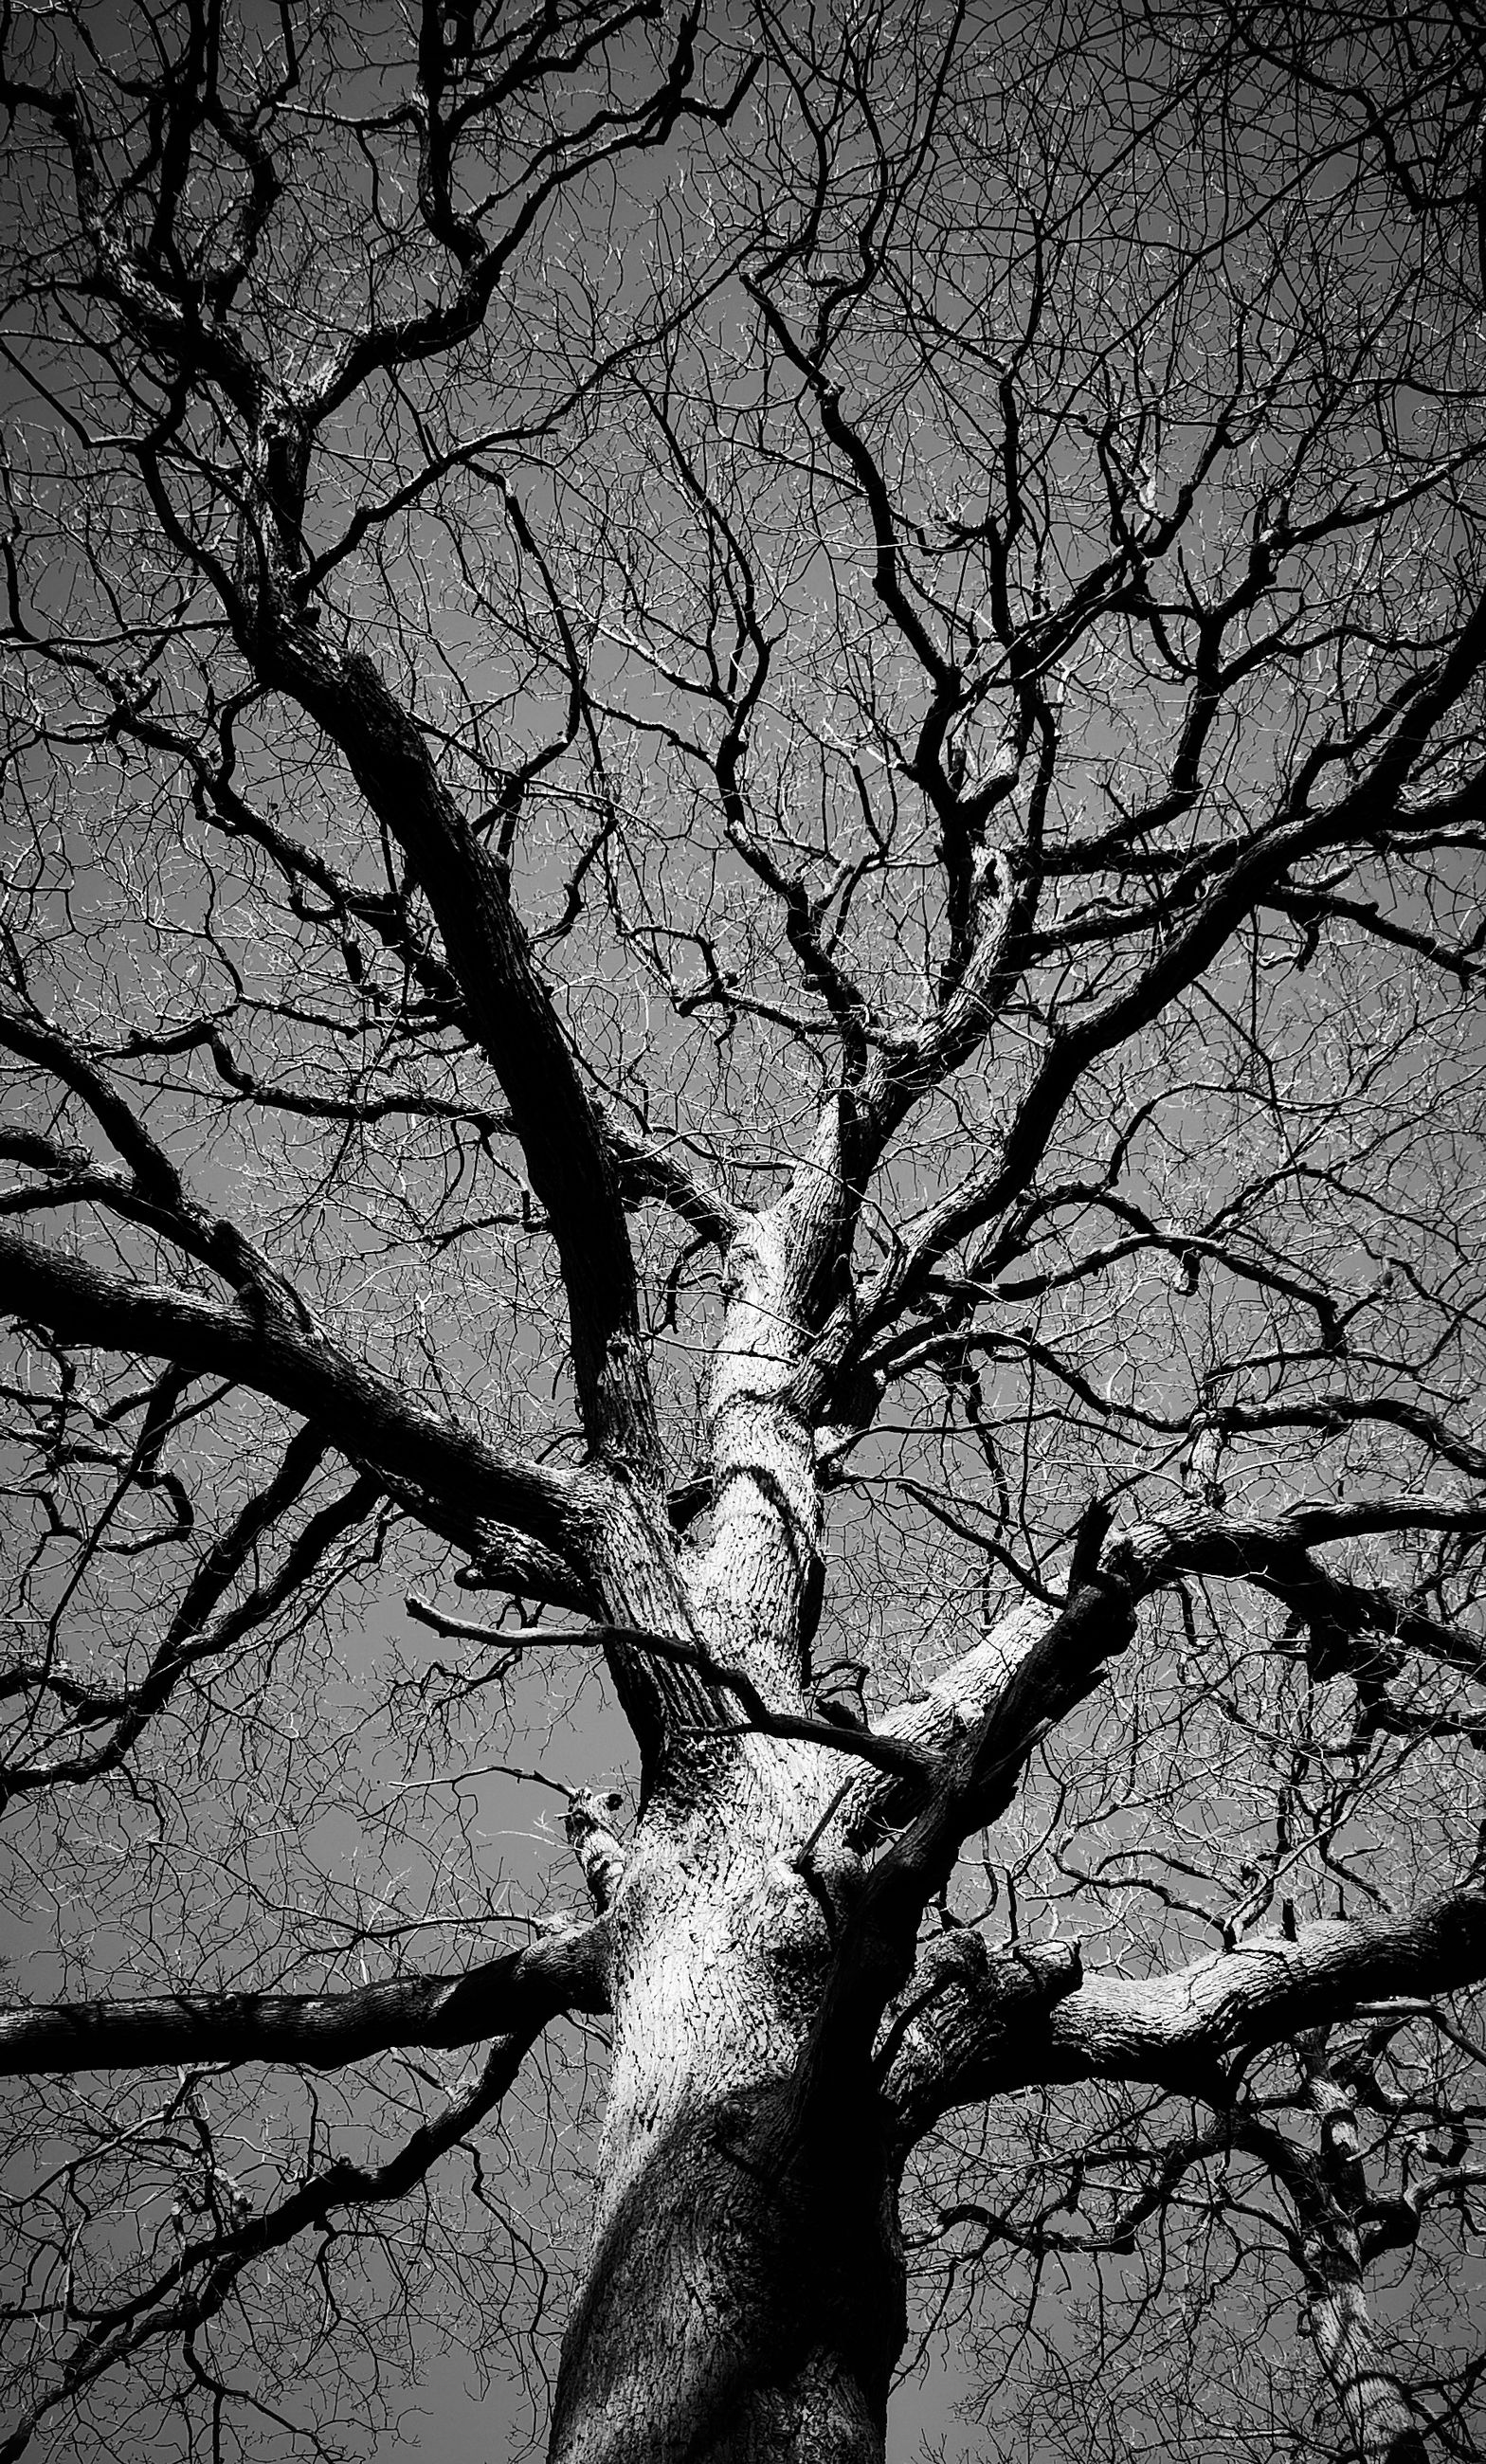 bare tree, tree, branch, nature, tree trunk, trunk, plant, tranquility, no people, sky, low angle view, dead plant, day, outdoors, beauty in nature, non-urban scene, scenics - nature, land, environment, tranquil scene